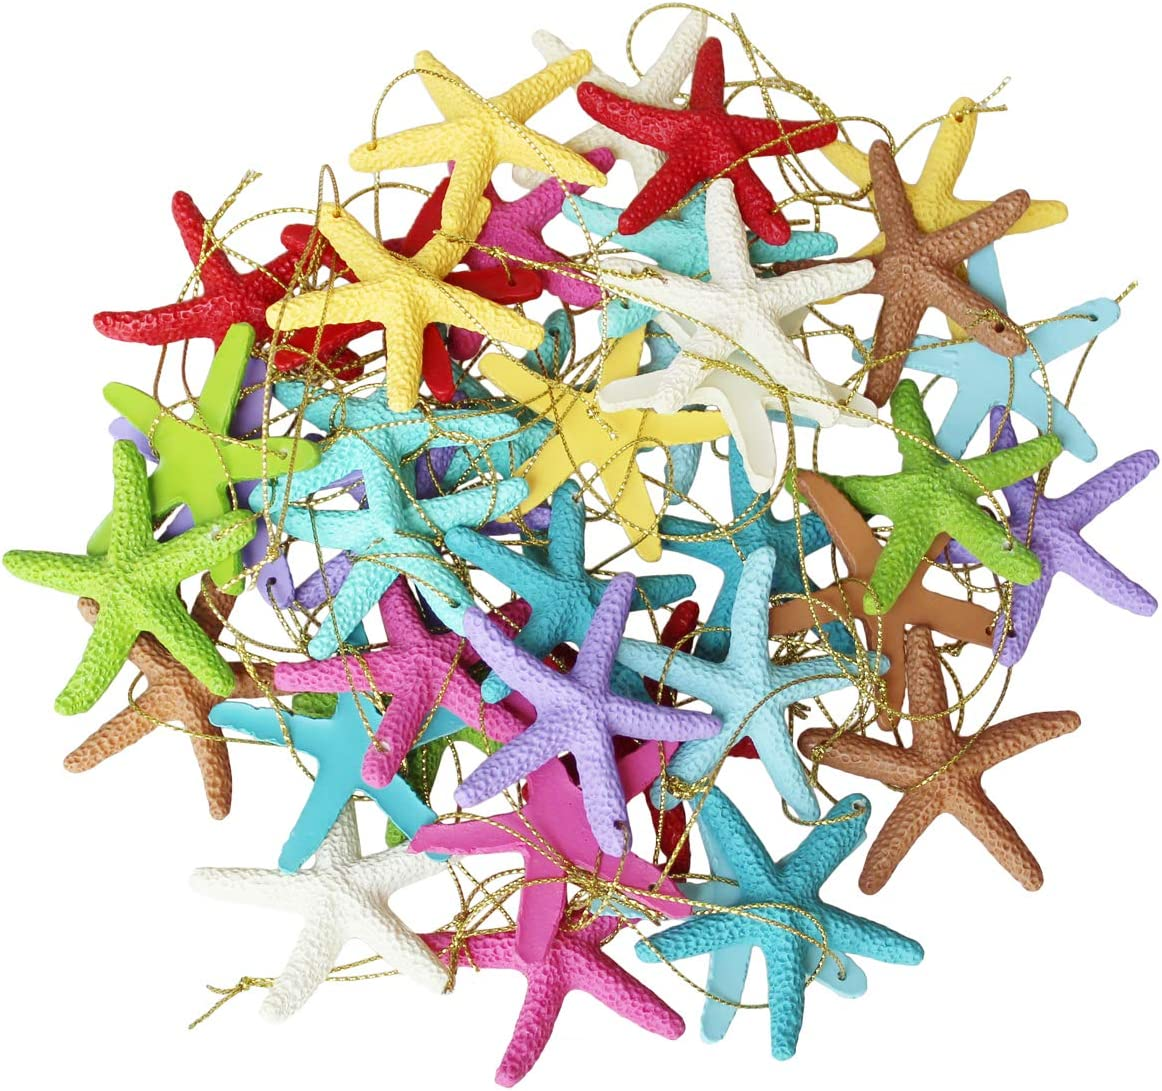 LJY 40 Pieces 2.3 Inches Resin Pencil Finger Starfish with Rope for Christmas Tree Hanging Ornaments Beach Theme Wedding Home Decor & DIY Craft Project, 10 Colors